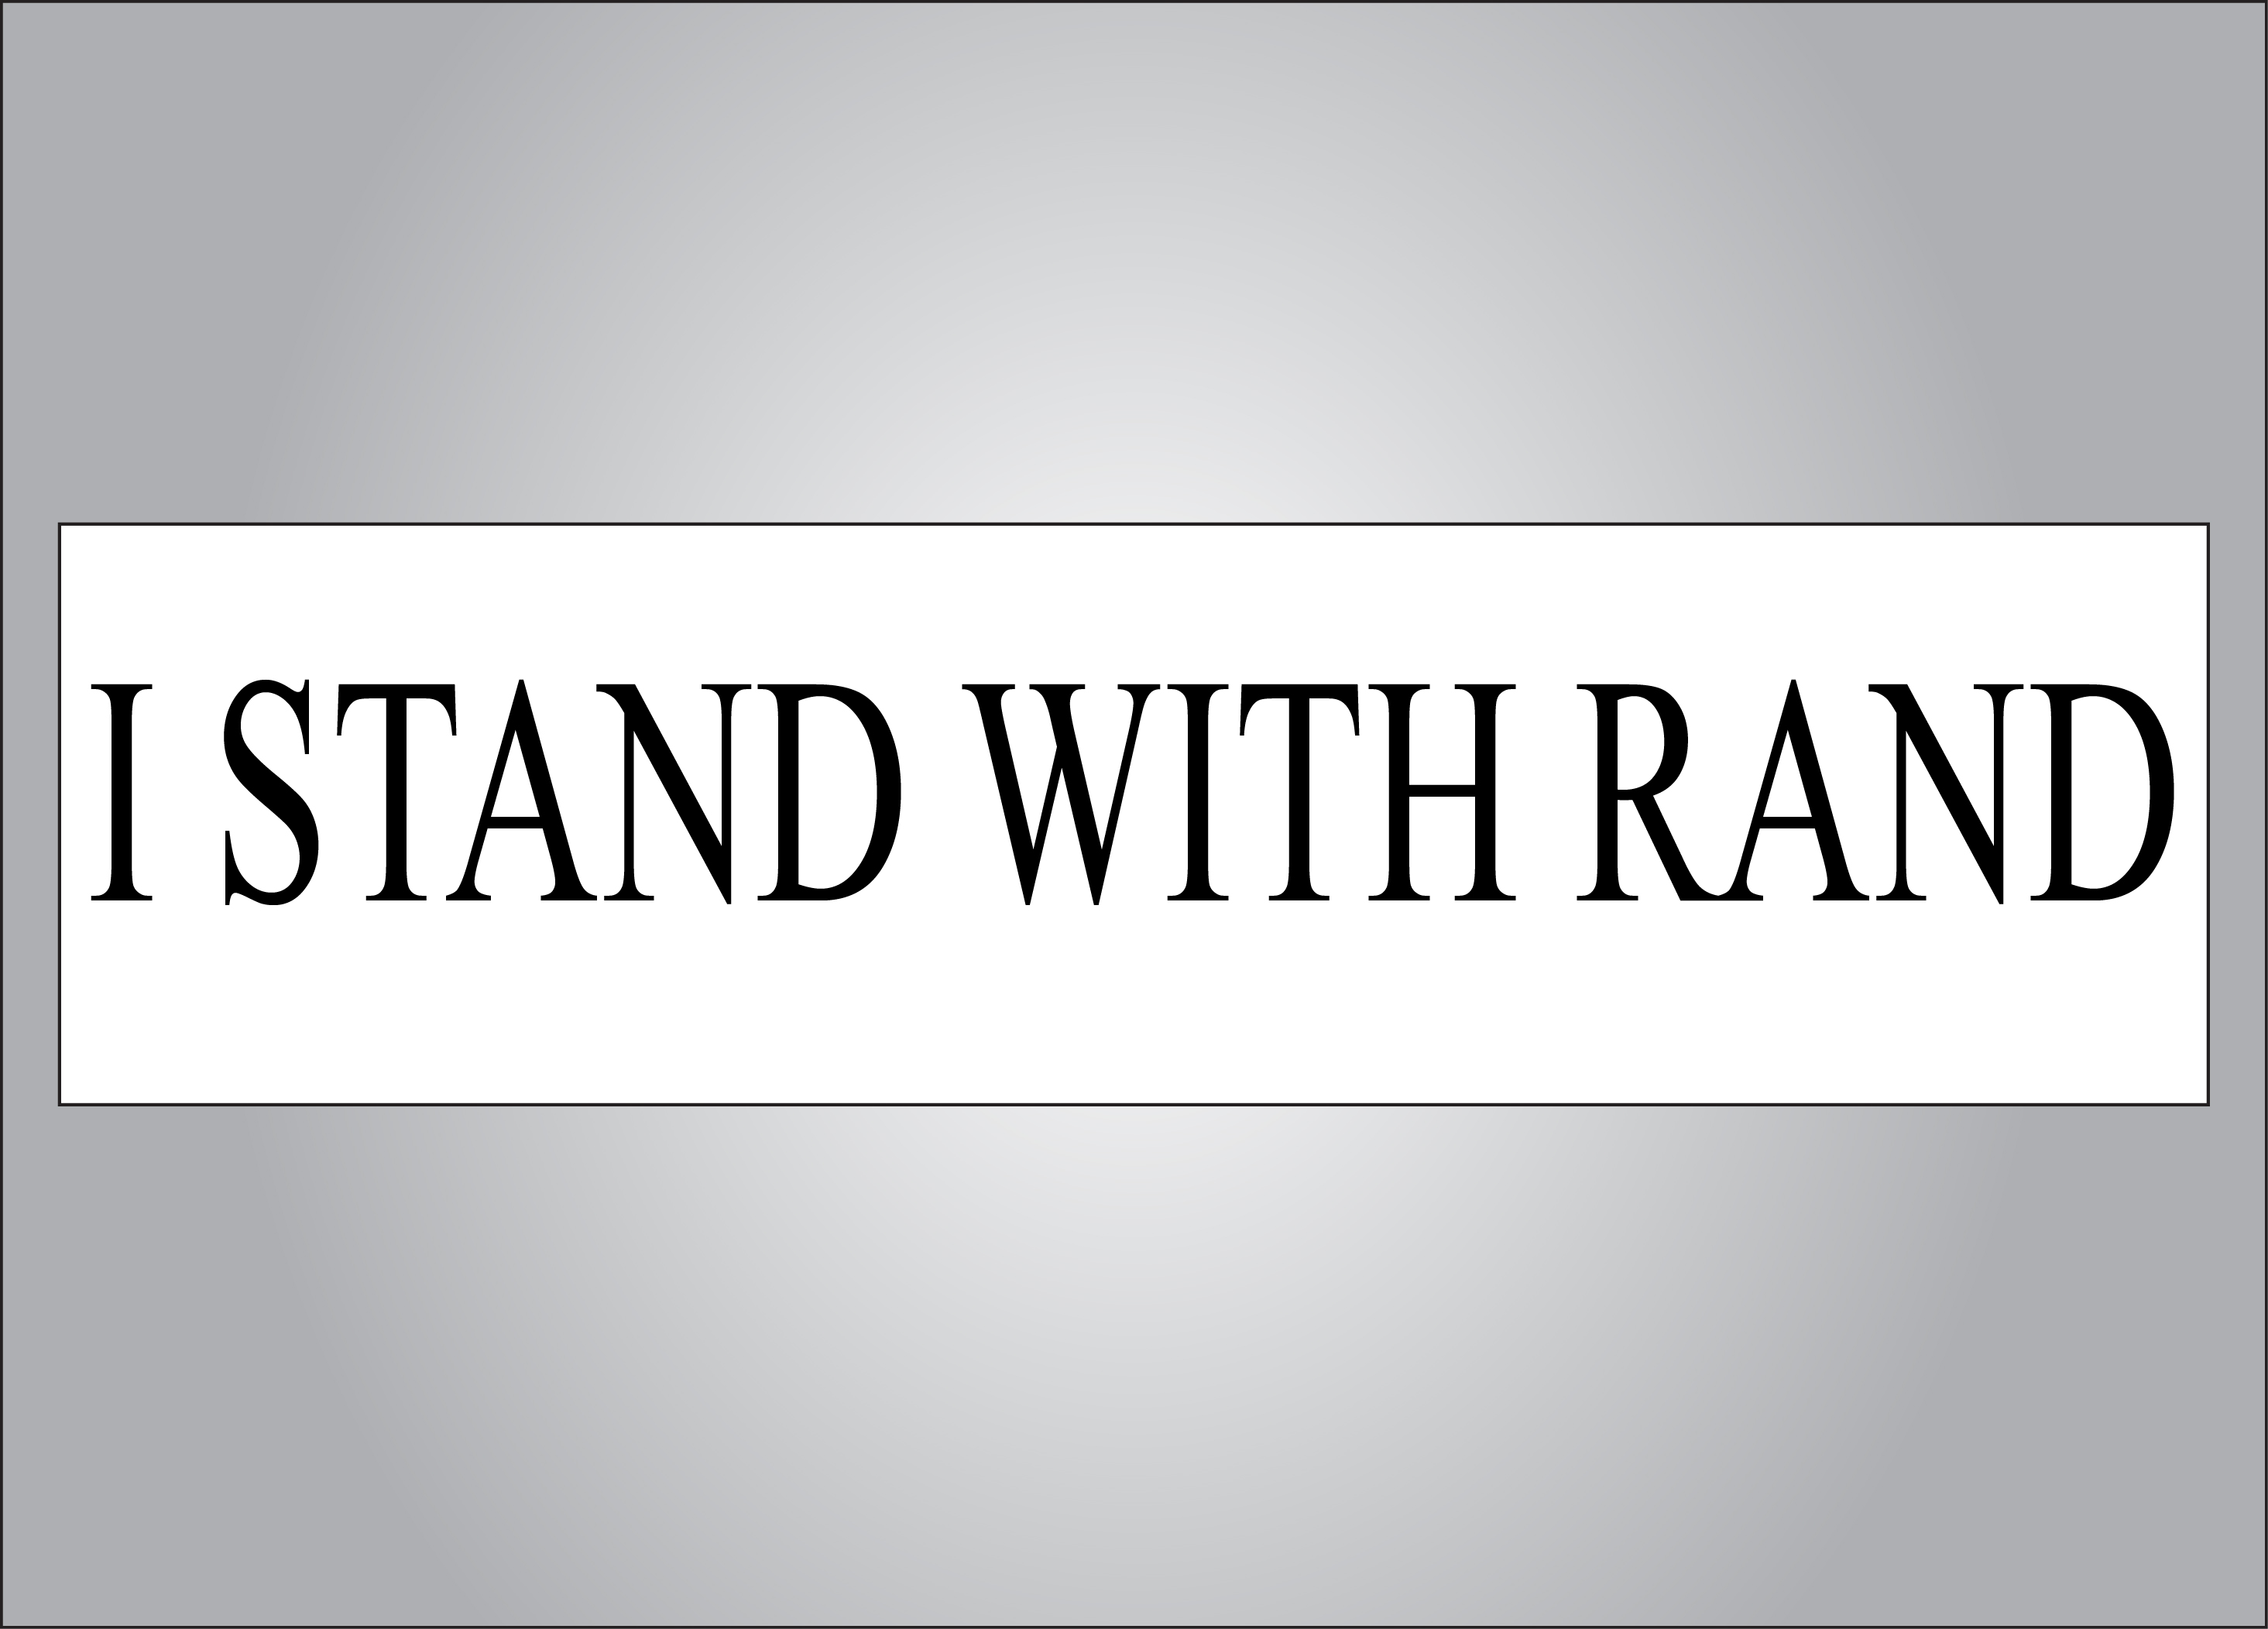 Take a stand with the only politician that stands for you.